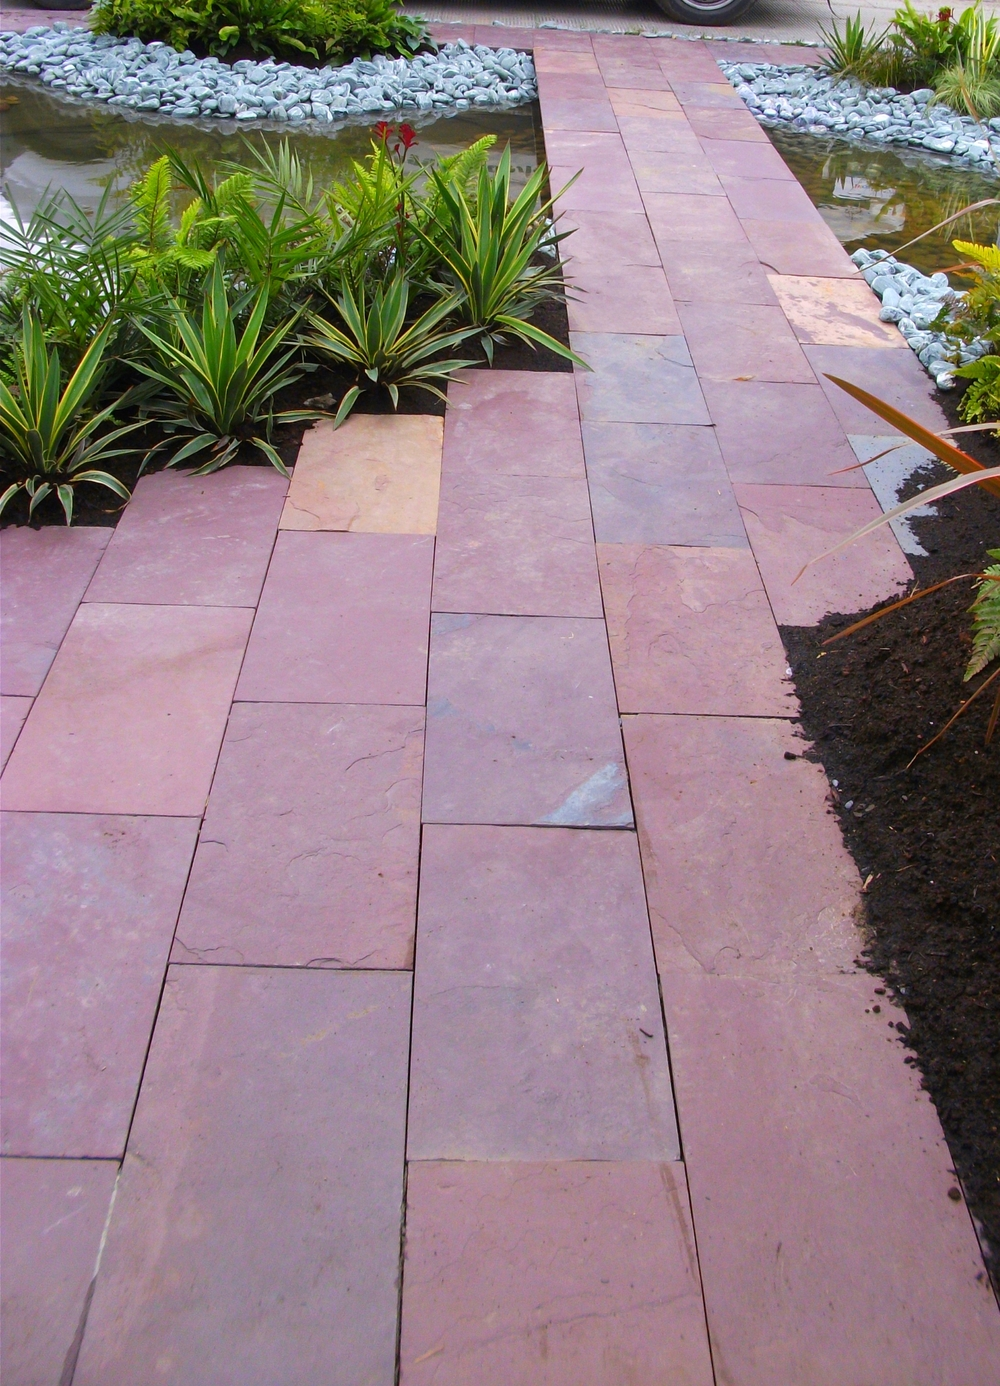 Amazon Bloom garden 'Indian Plum Slate'.jpg